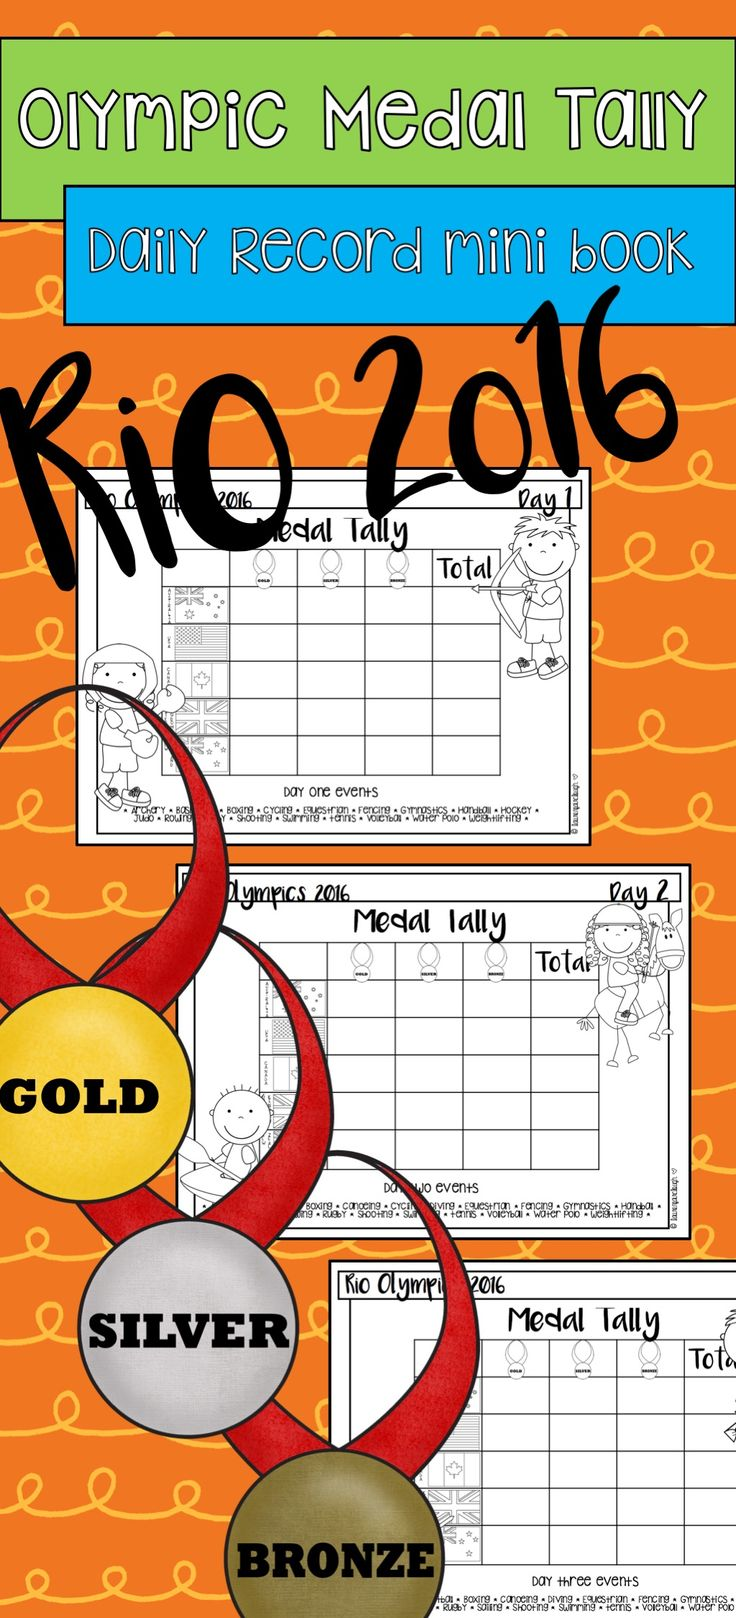 Rio Olympic Games 2016 Medal Tally Mini Book